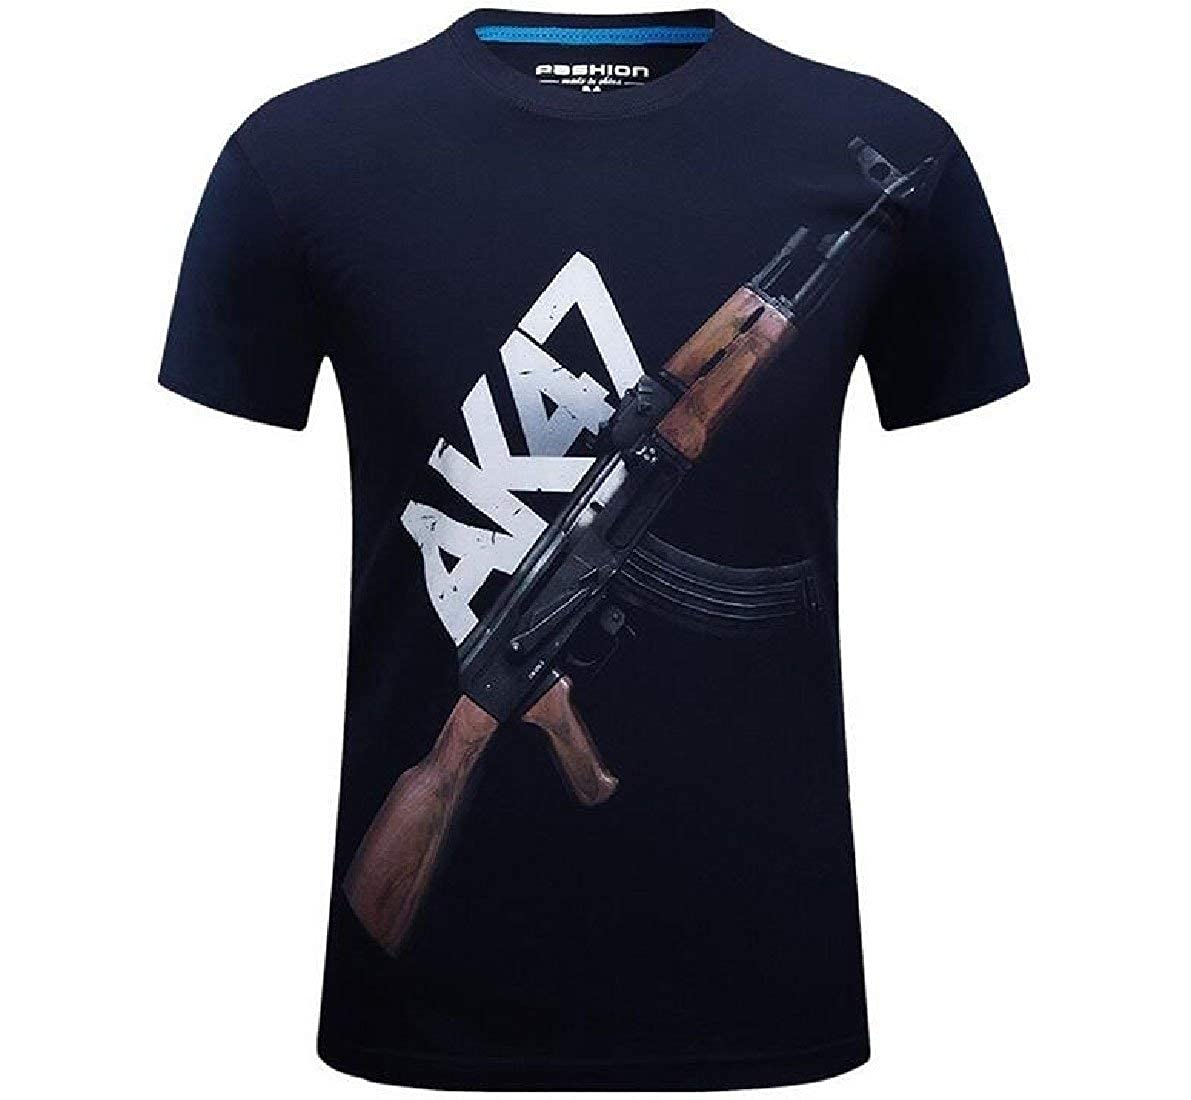 Zimaes-Men Short Sleeve Athletic Floral Printed Crew-Neck T Shirts